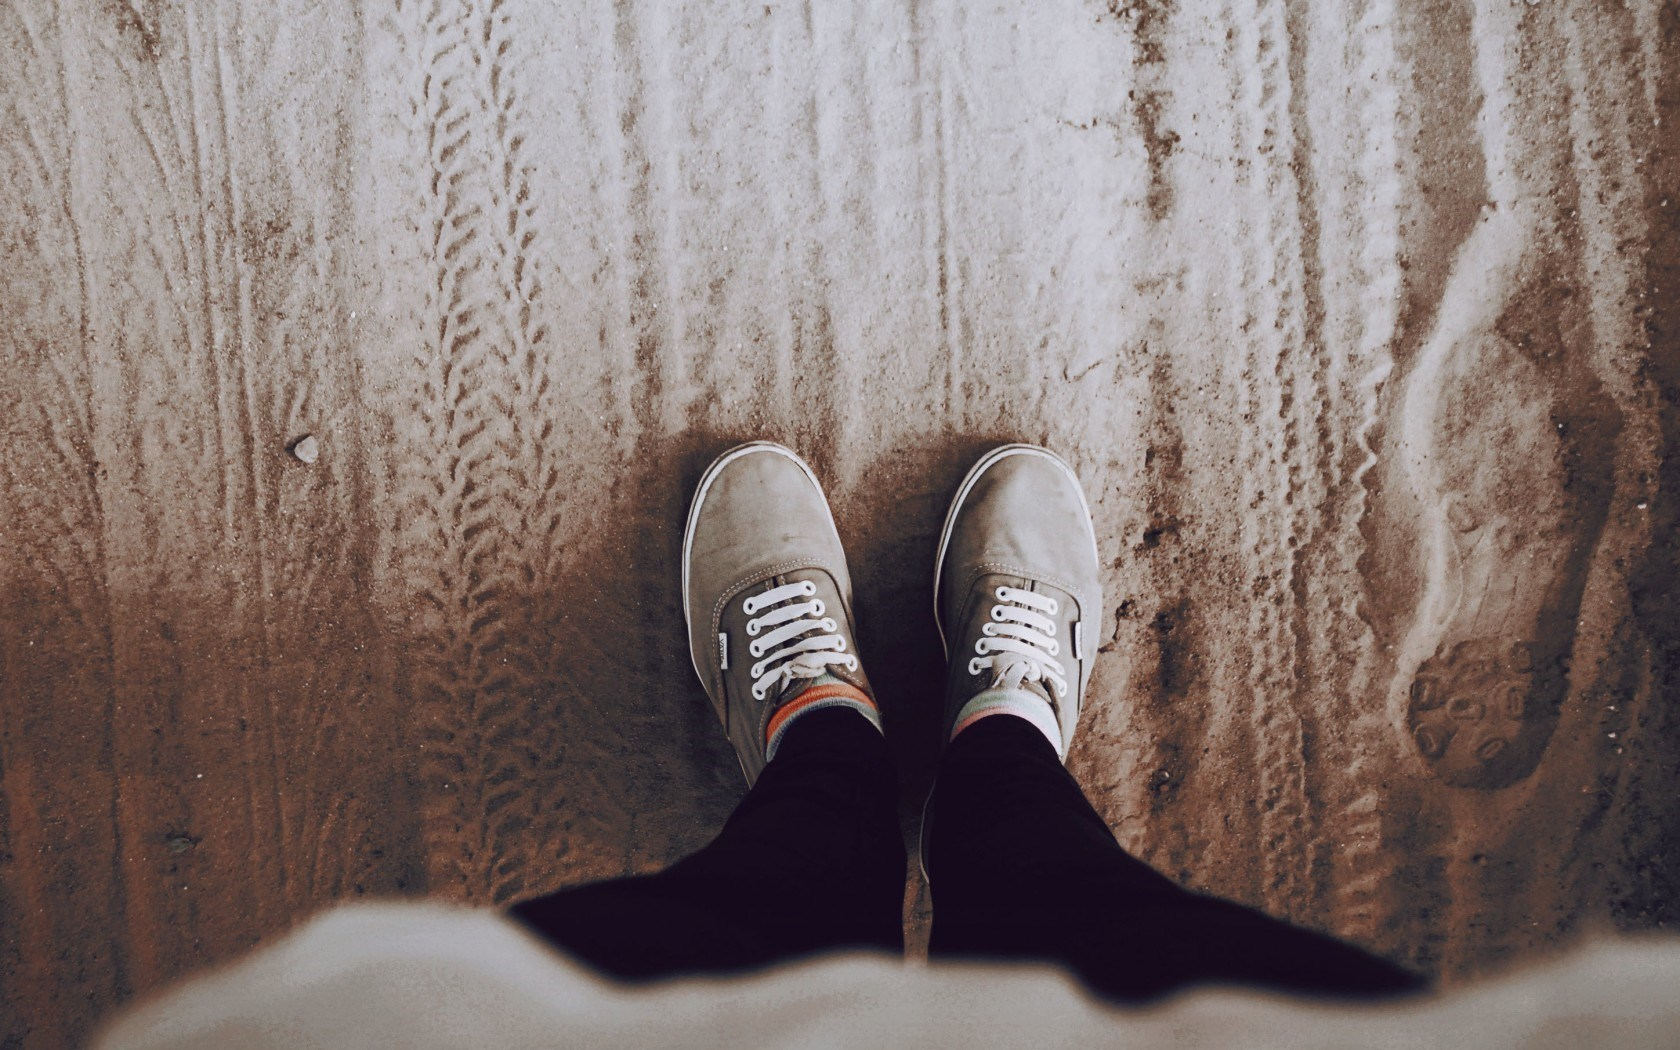 Lovely Sneakers Wallpaper